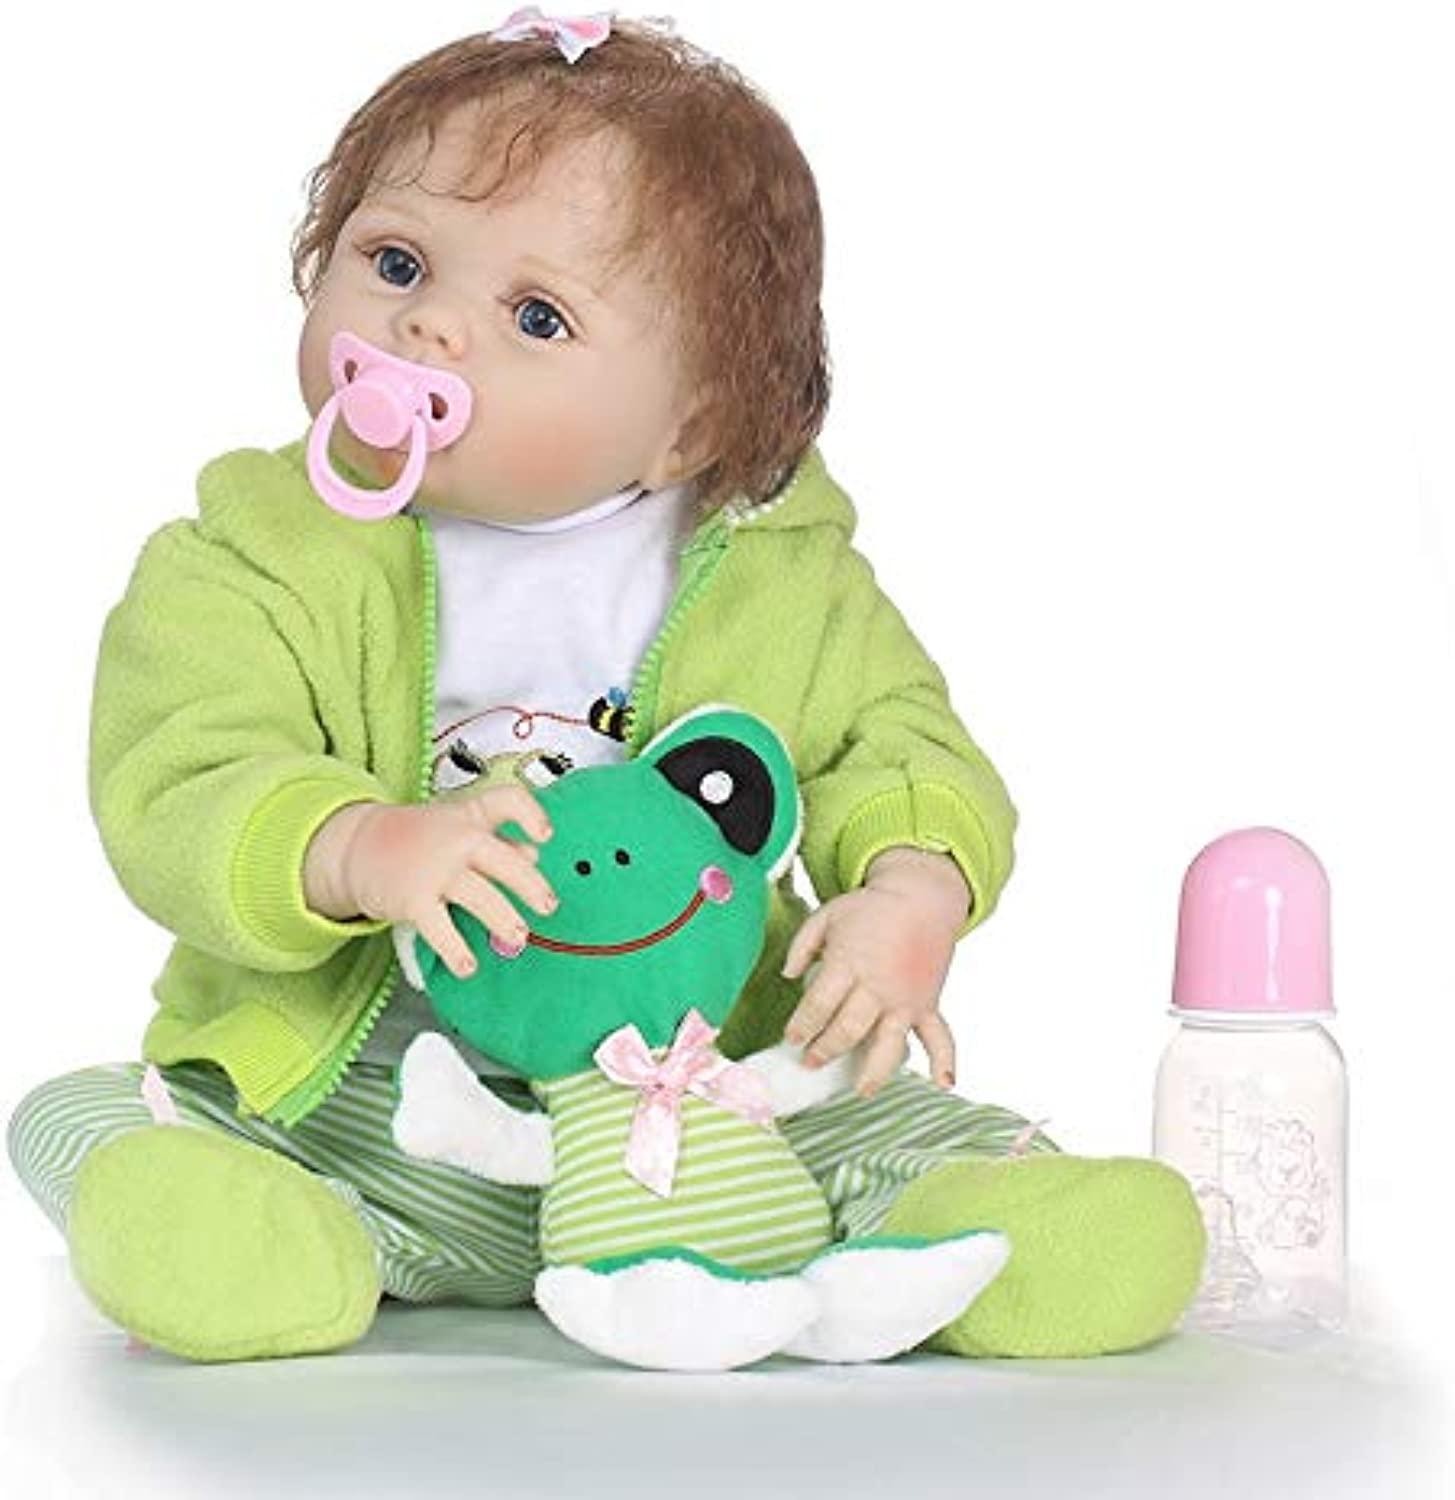 Acestar Reborn Baby Doll Realistic Soft Simulation Silicone Vinyl 22inch 55cm Magnetic Mouth Lifelike Vivid Boy Girl Toy Green Clothes Frog Doll SH55C293